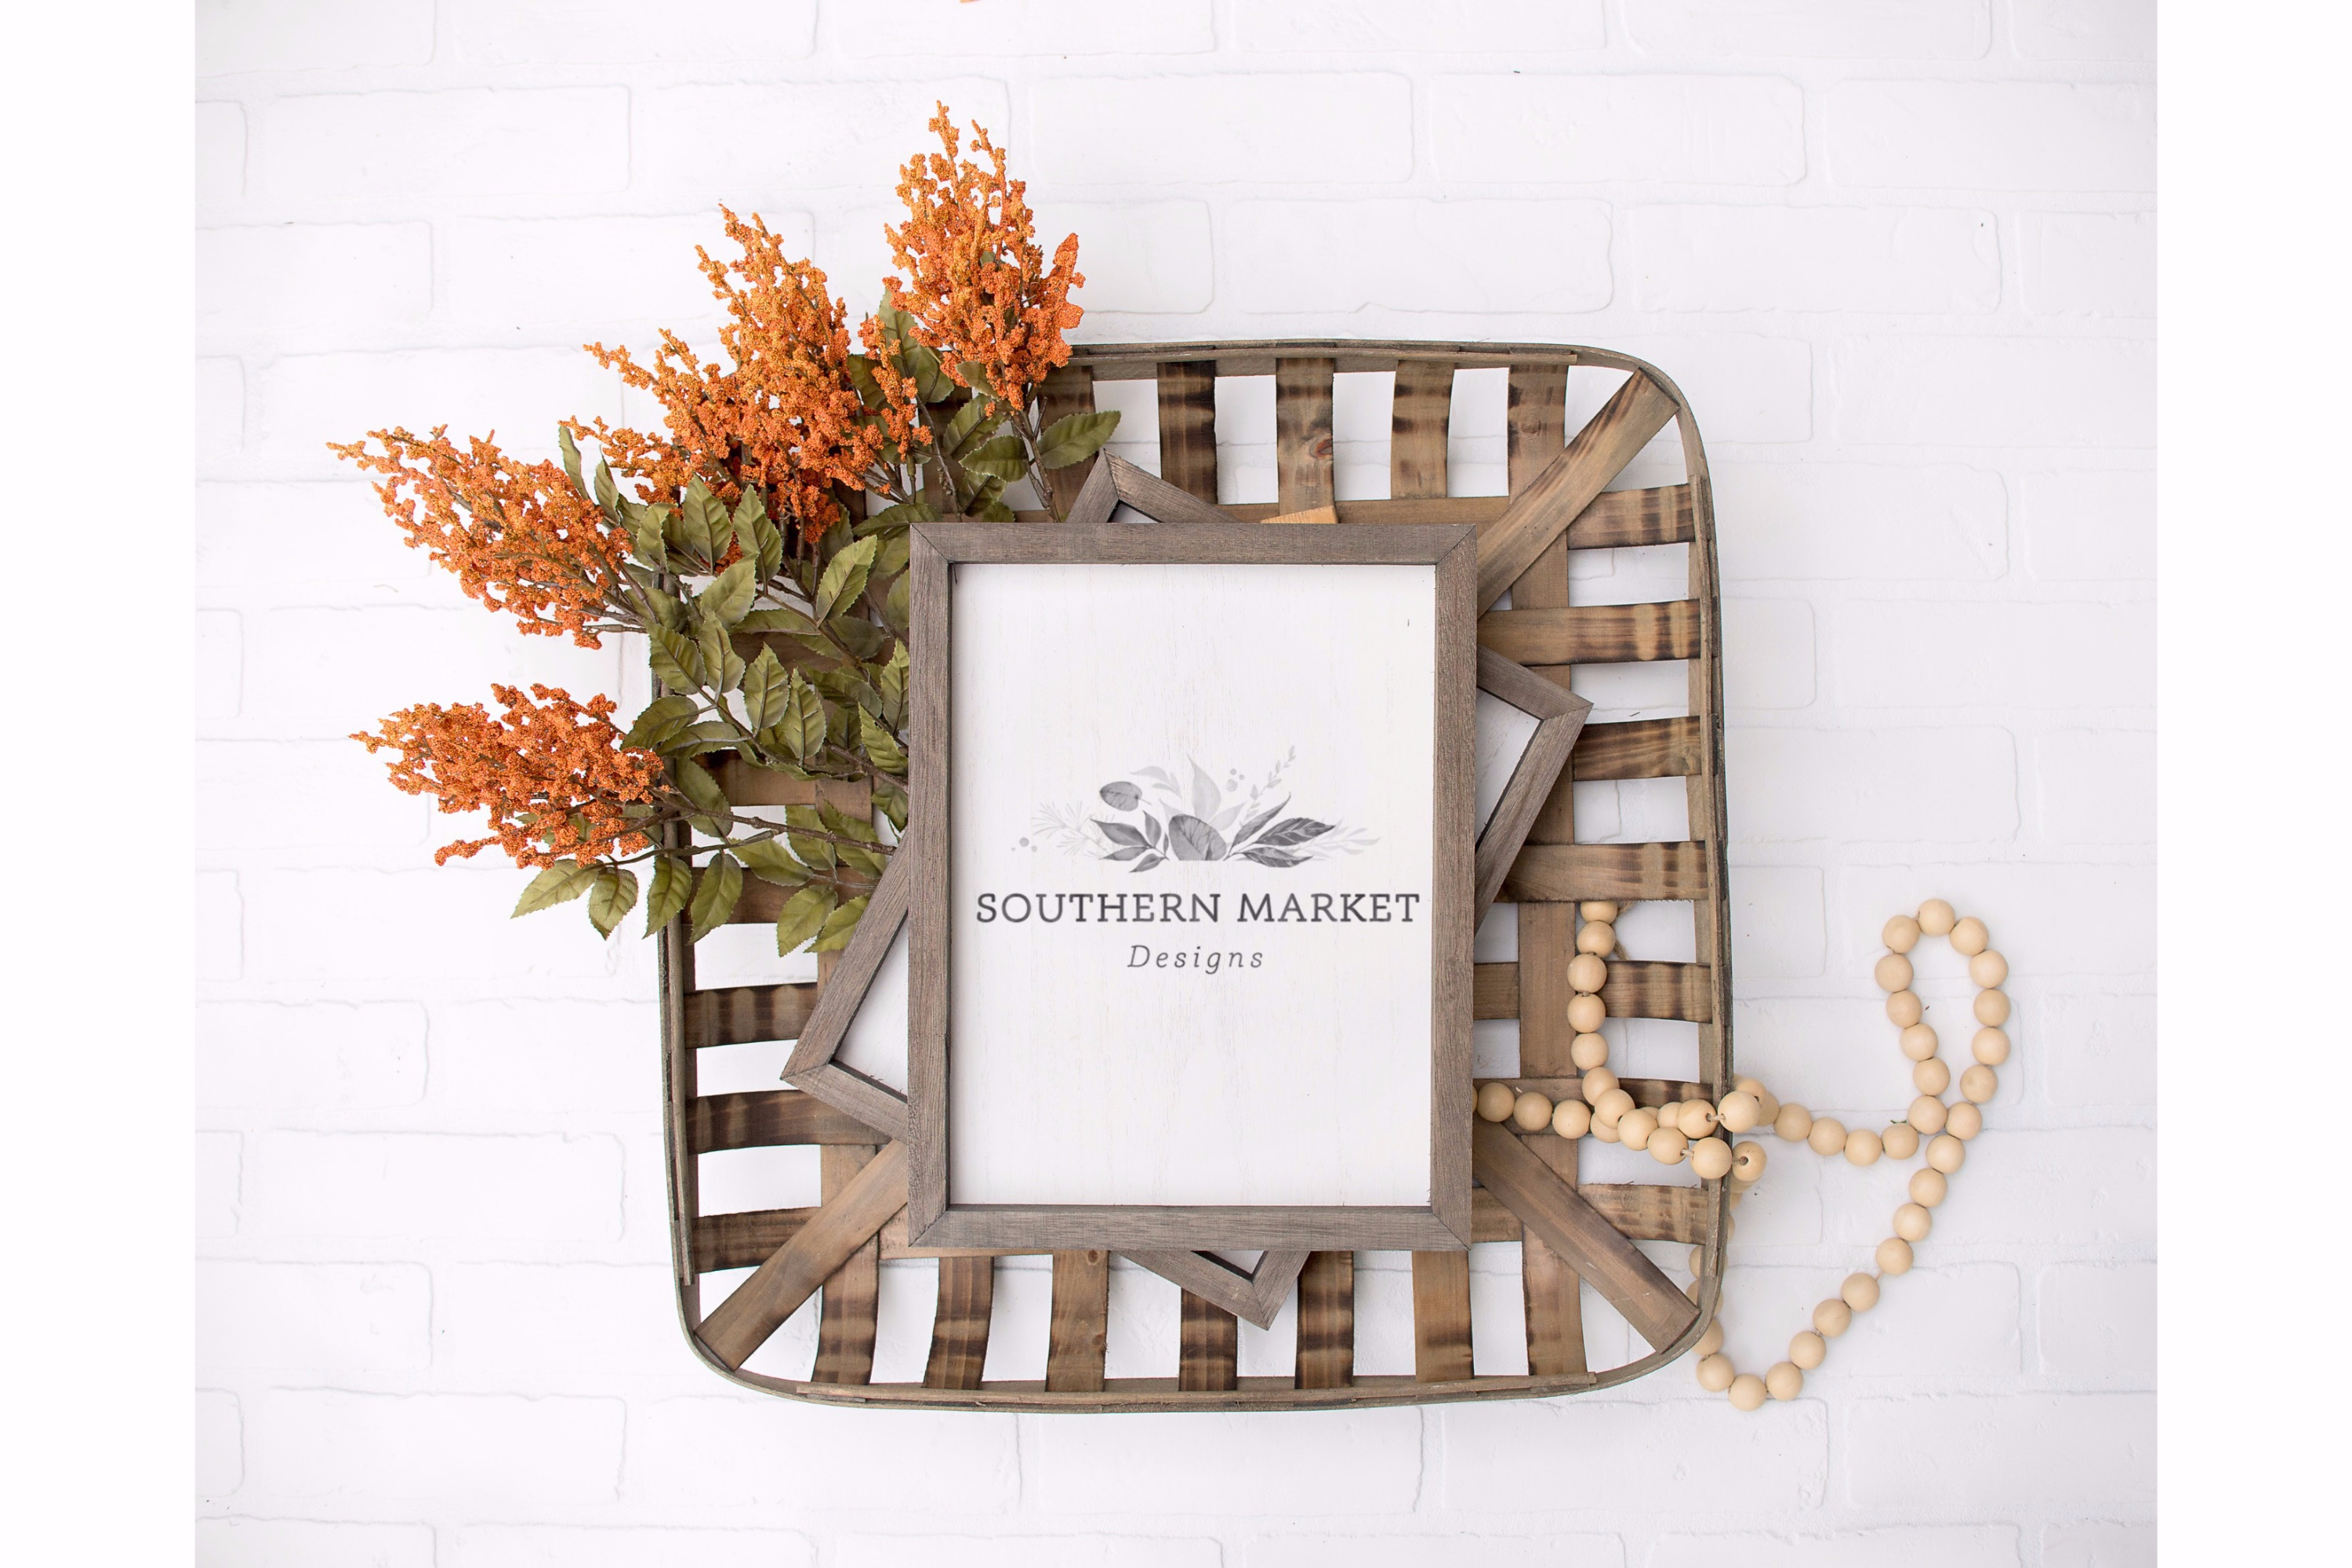 Fall Wood Framed Sign 9x12 Mock Up Photo Stock Photography example image 1